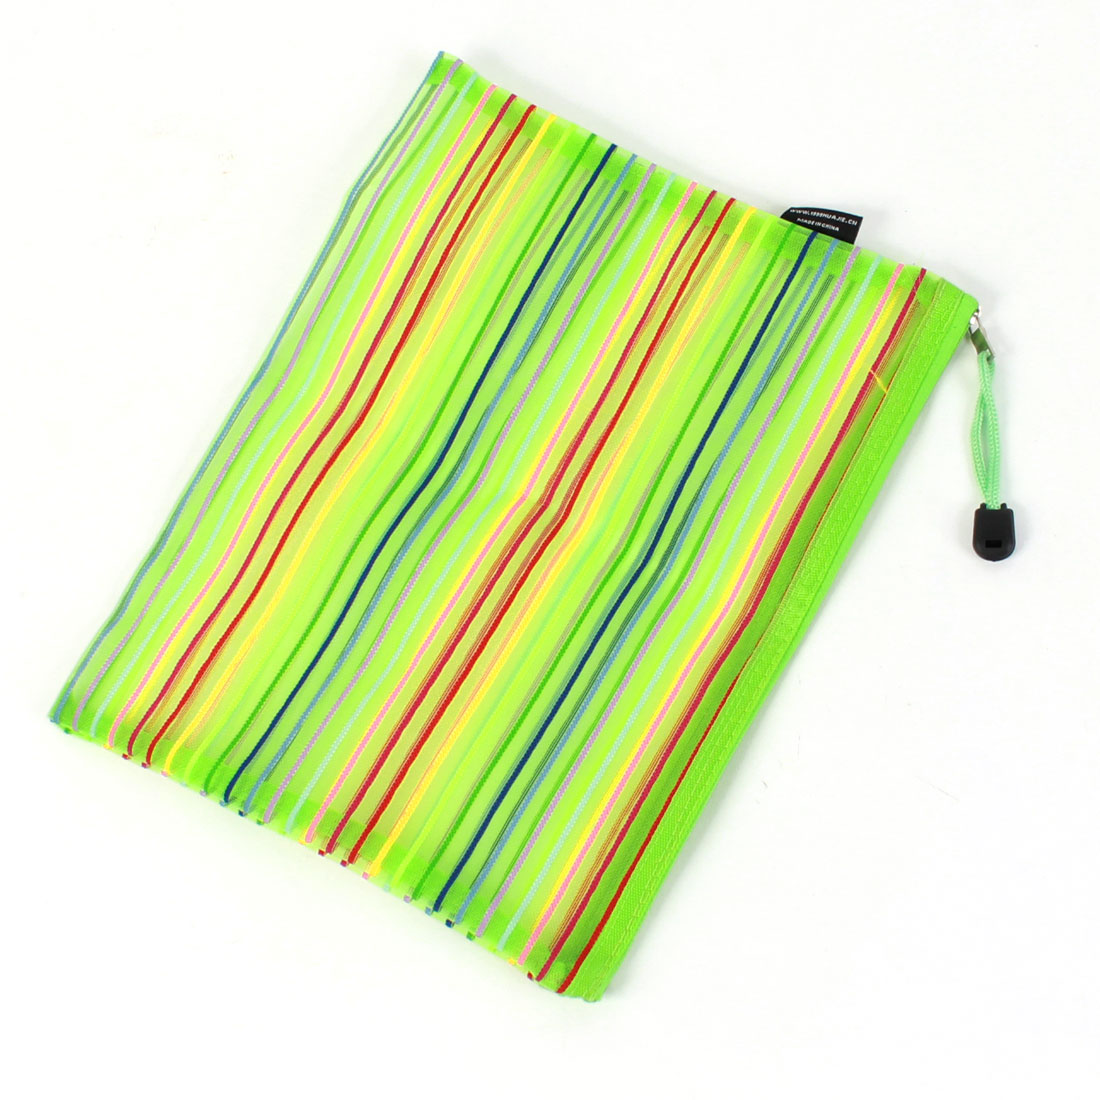 Green Single Compartment Zipper Document Files Bag for Student